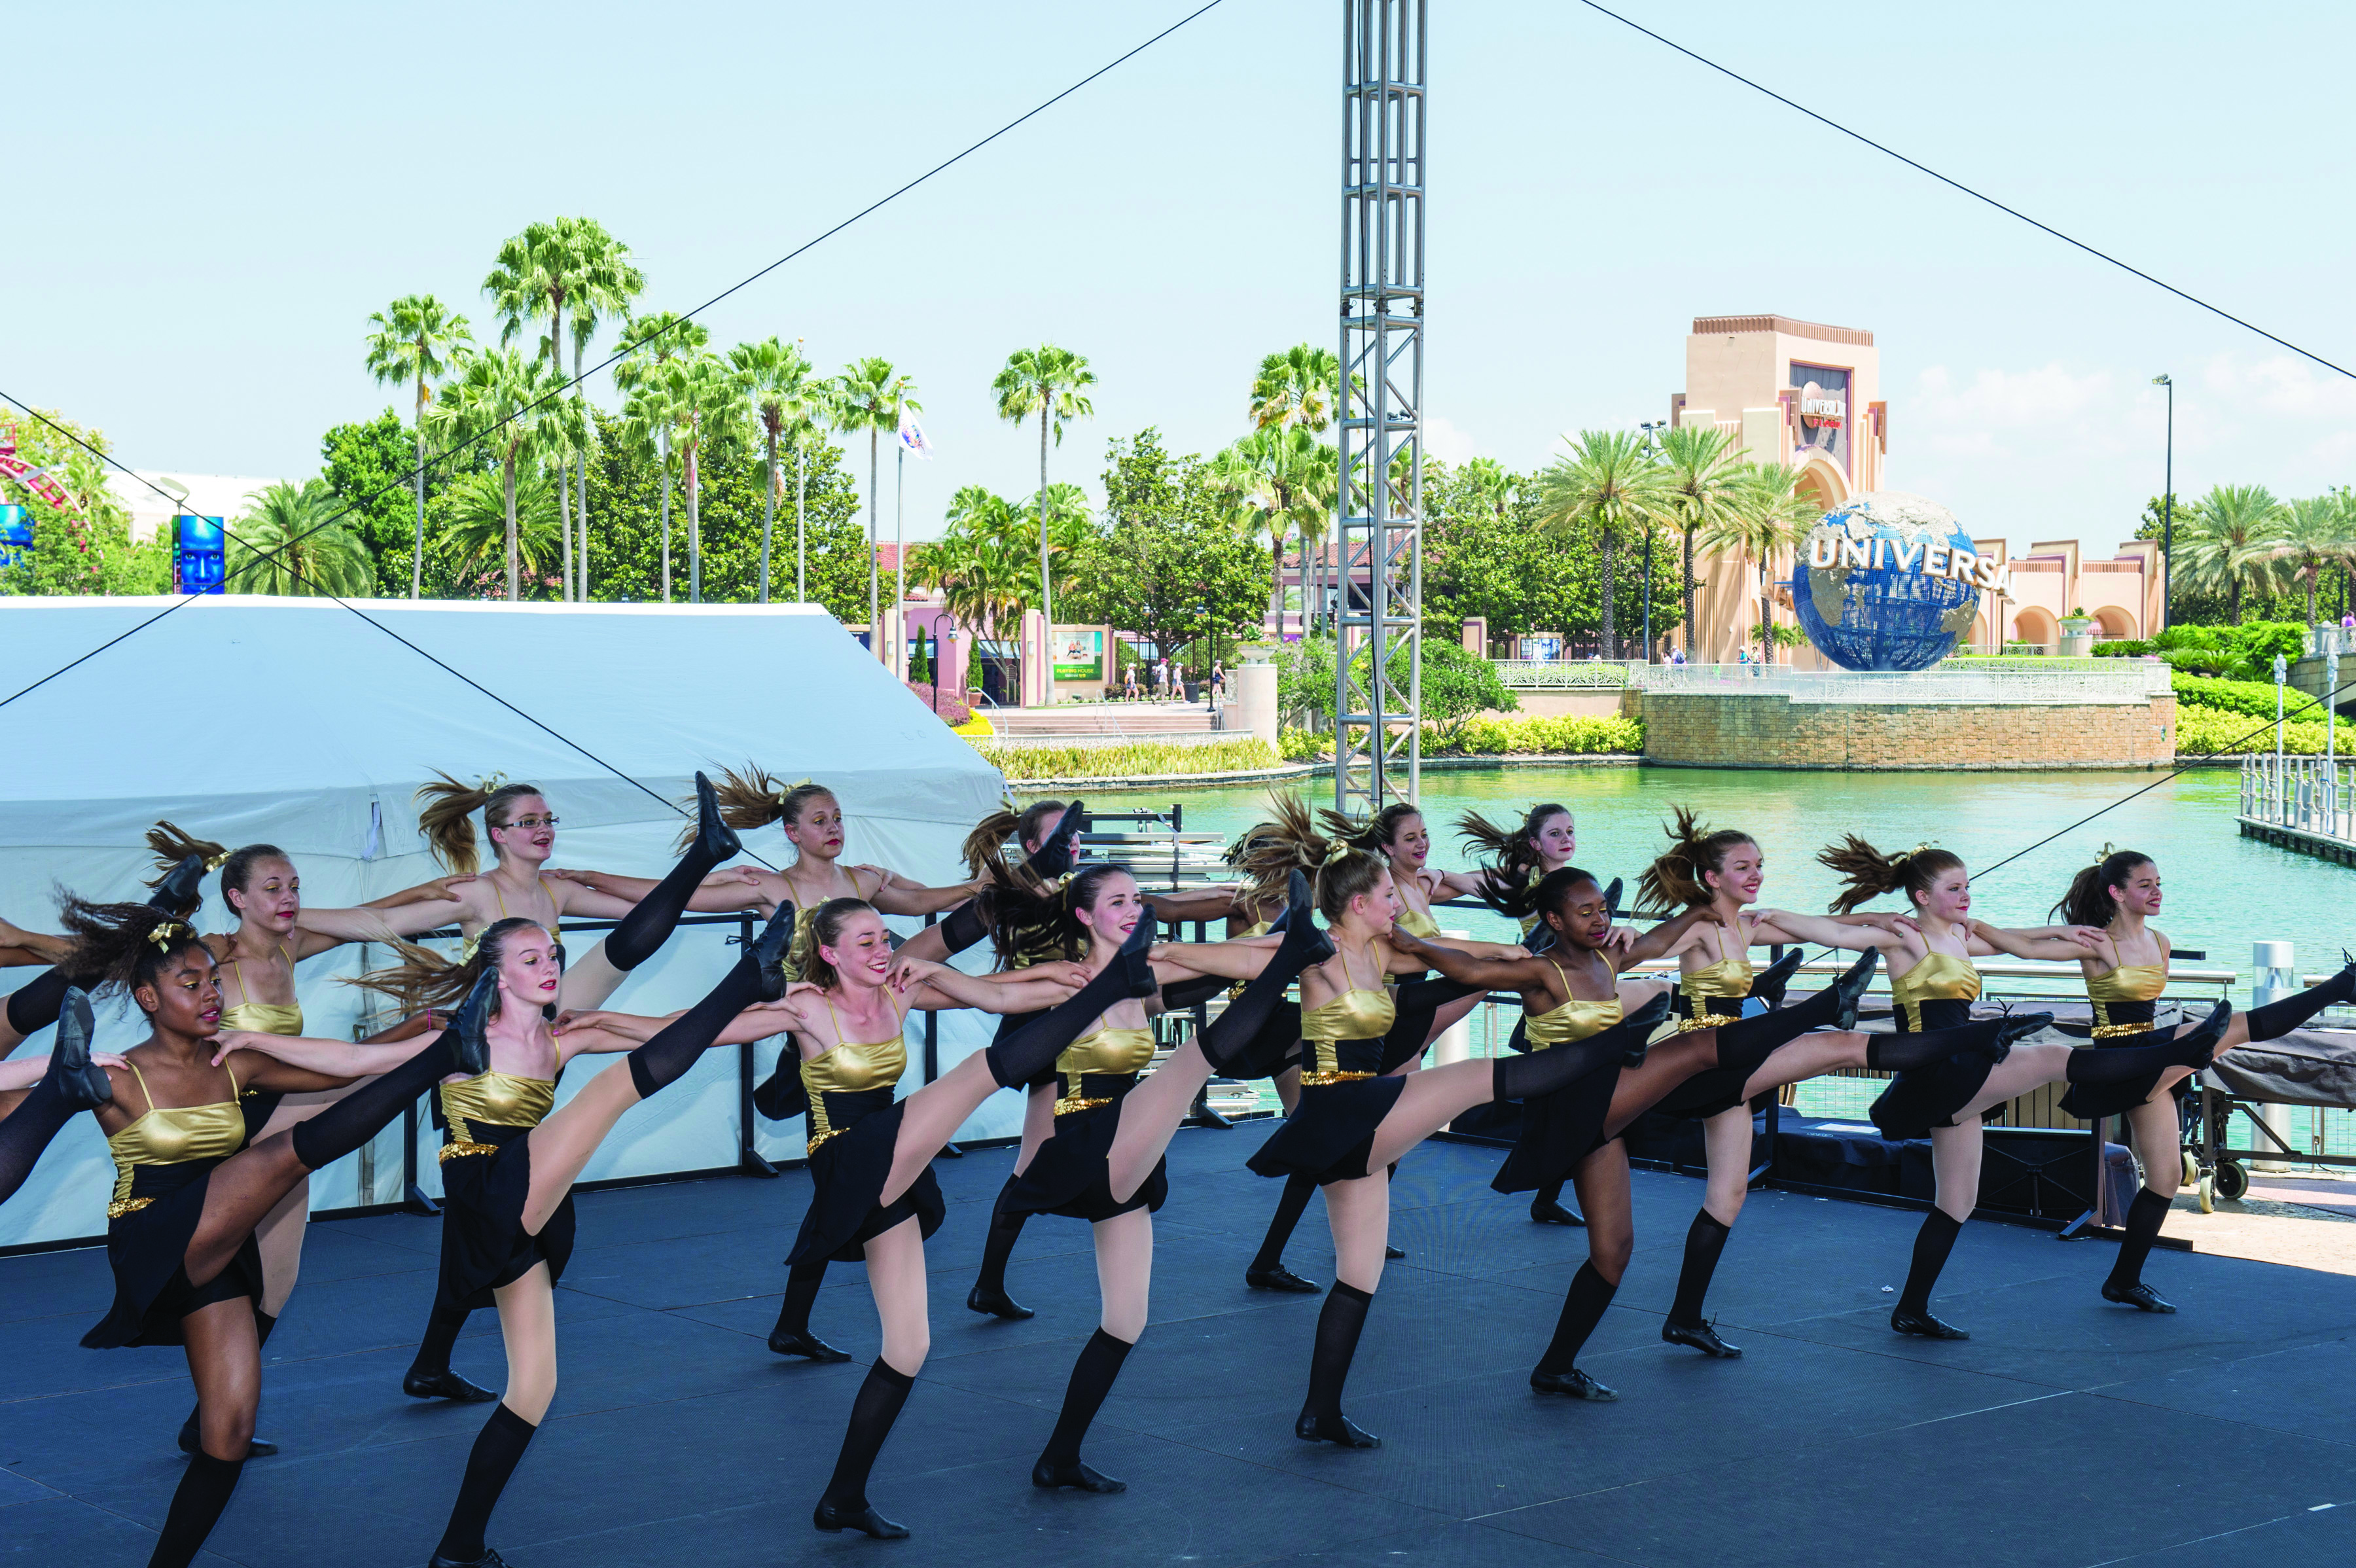 Stars Program, City Walk Stage, Dancers